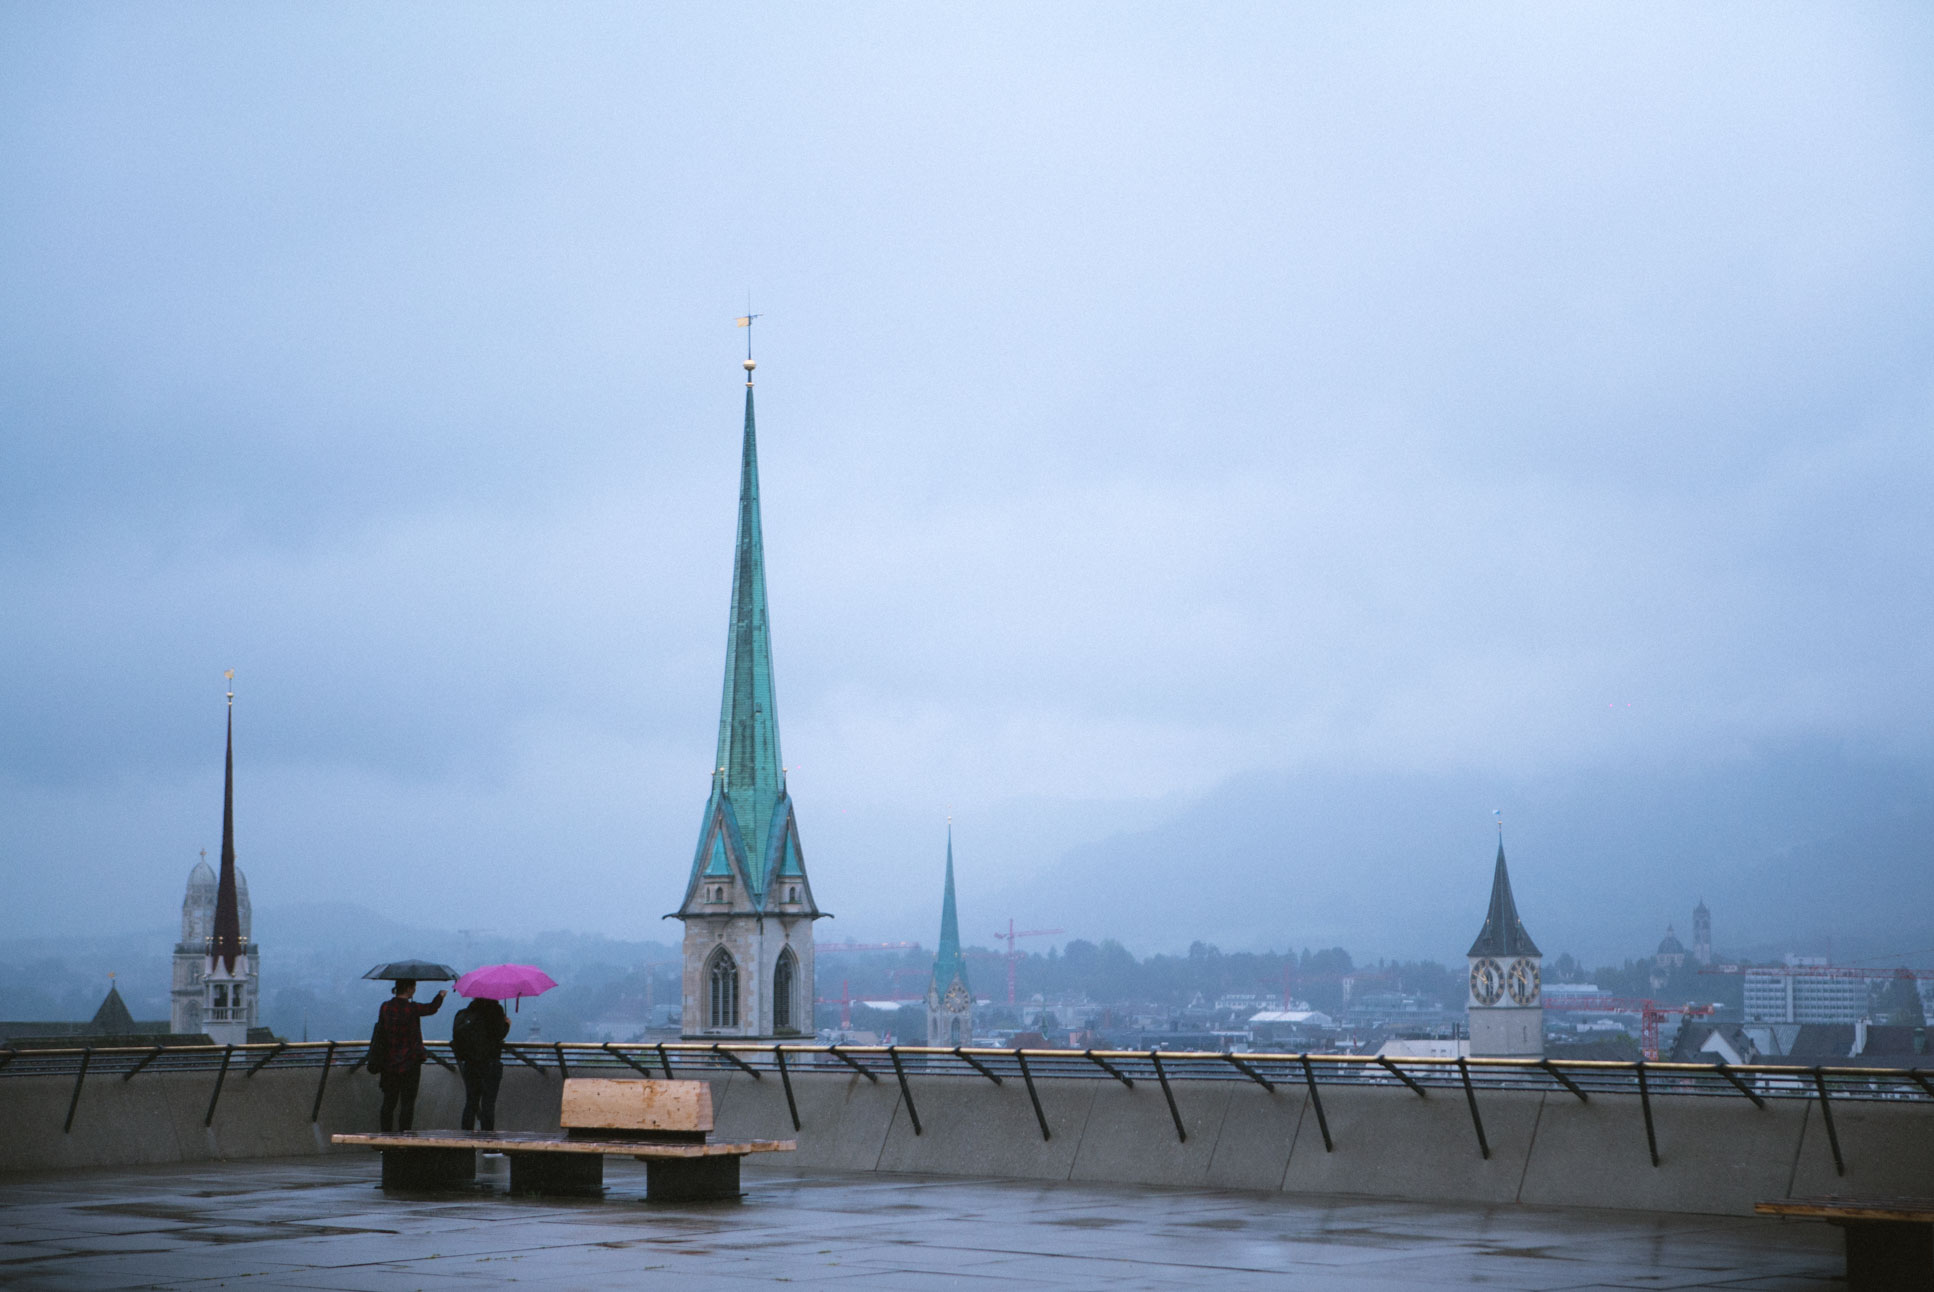 ETH Polyterrasse is one of the best spots to observe the weather over Zurich